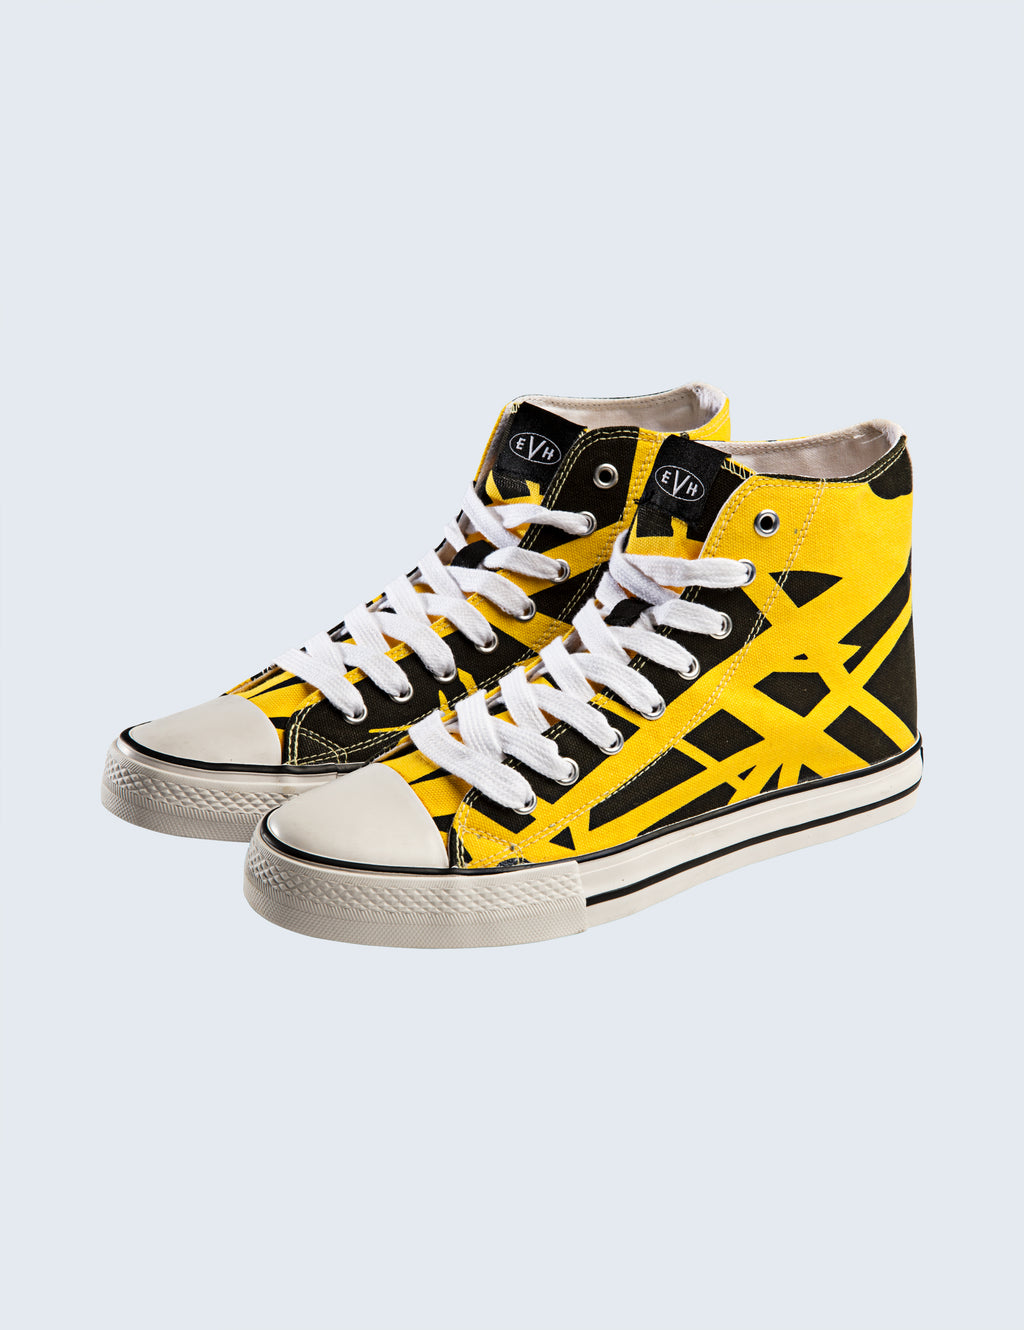 EVH Yellow High Top Shoes